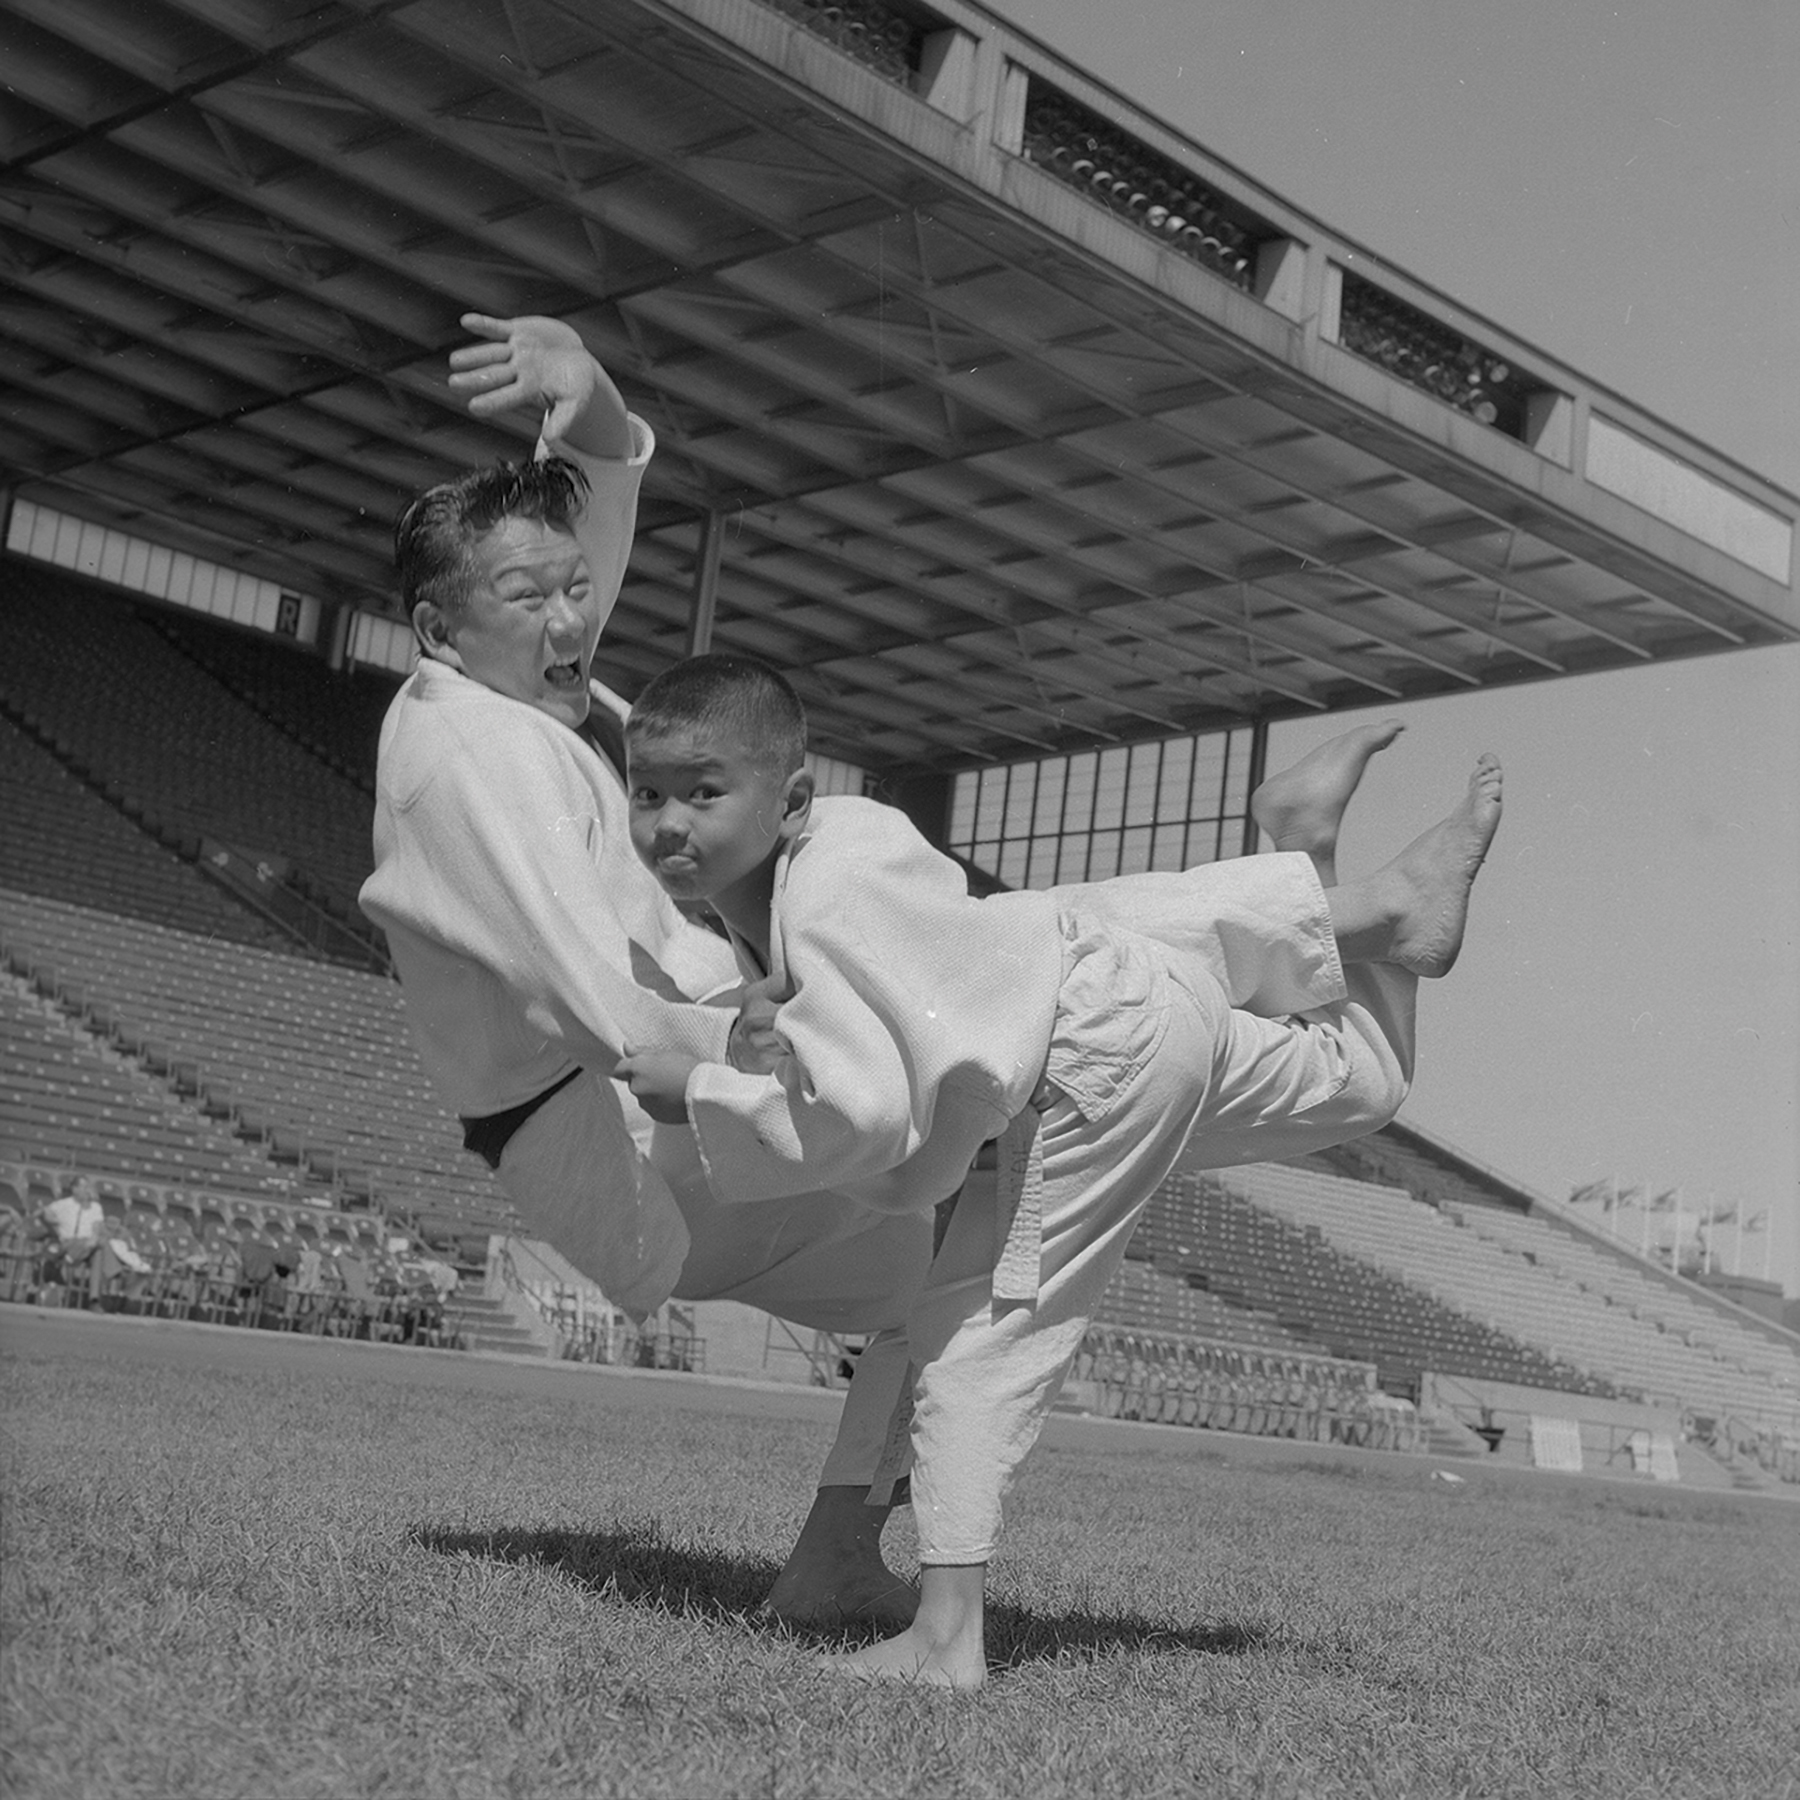 Martial Arts Demonstration at Grandstand, 1962. Canadian National Exhibition Archives, MG5-F771-I15. Courtesy of the CNEA